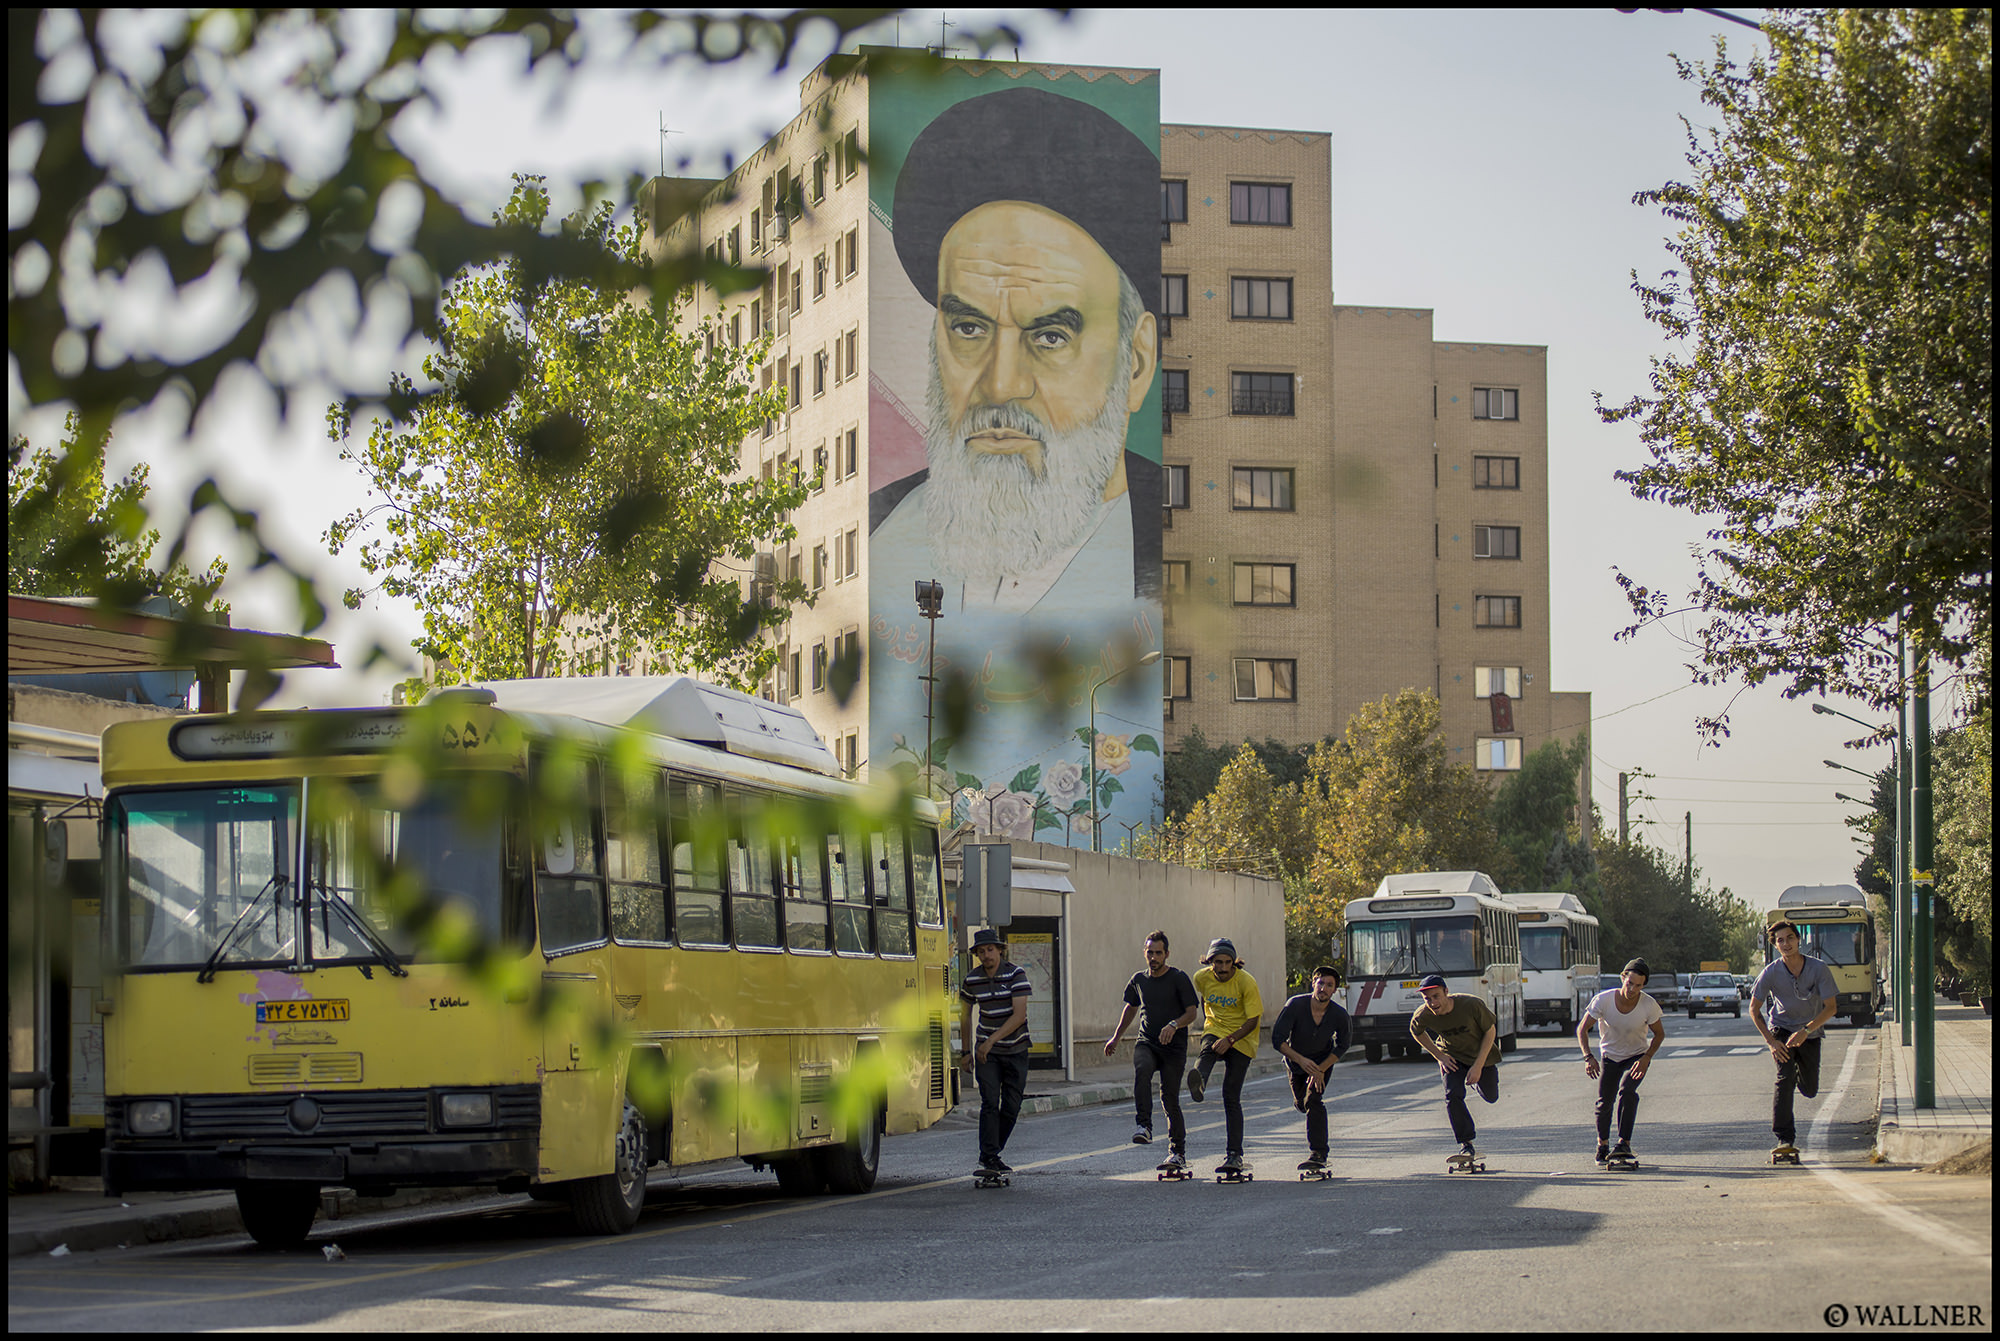 Digital Patrik Wallner Tehran Khomenei Push LOWQ 2000P